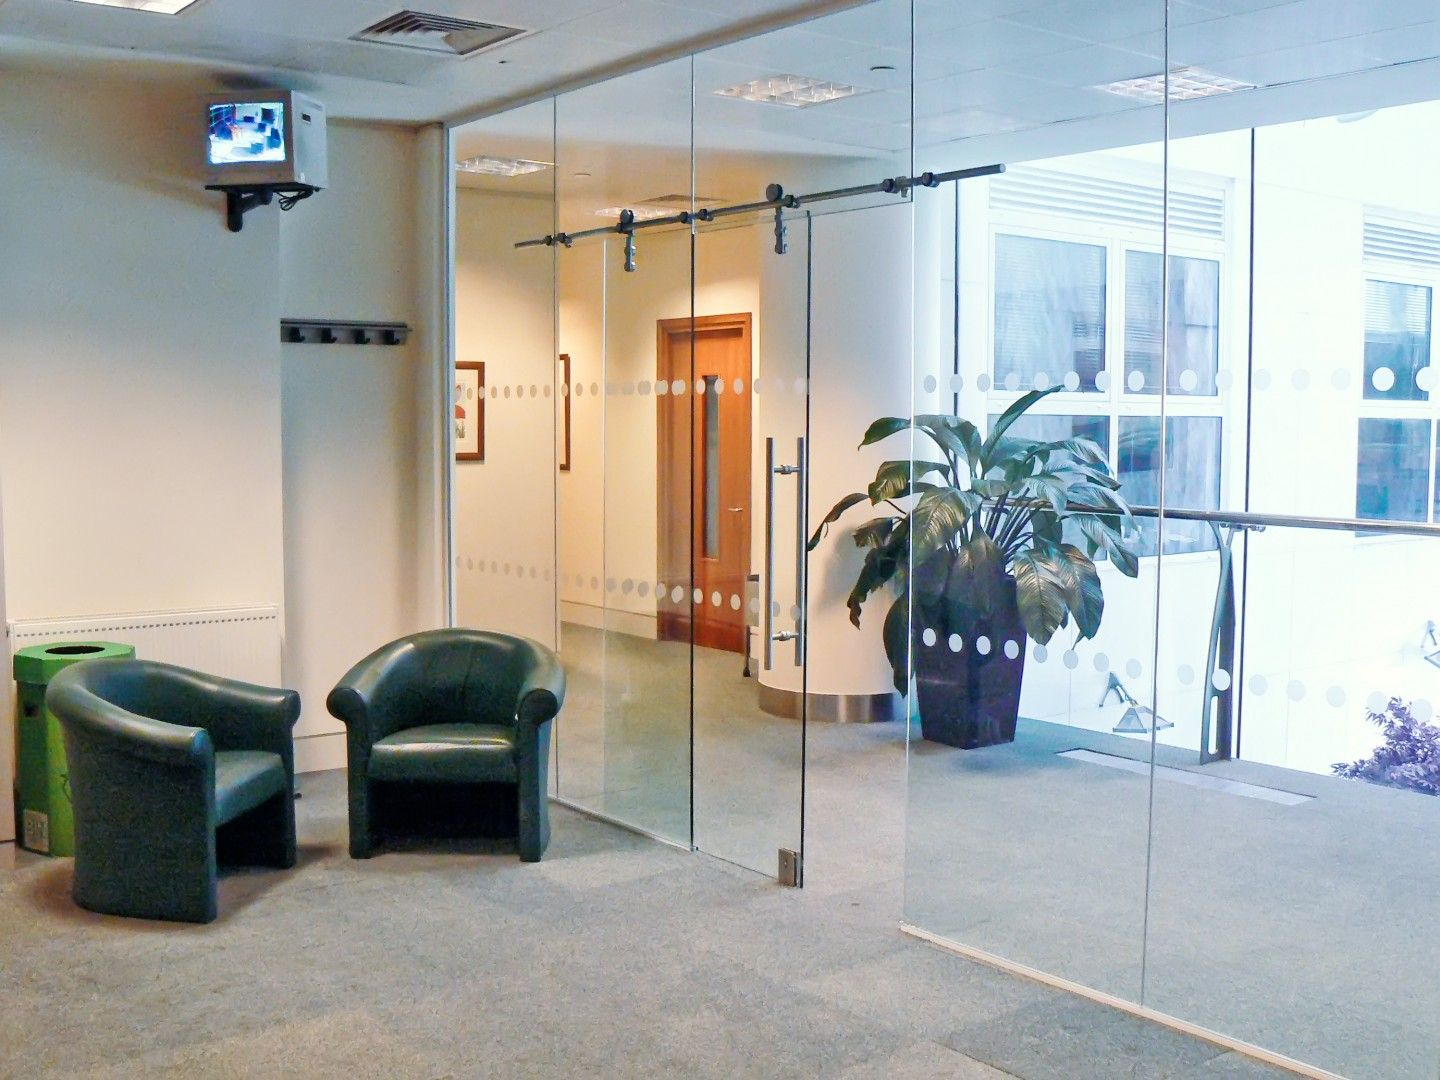 01 Impressive Office Formed From Full Height Frameless Glass